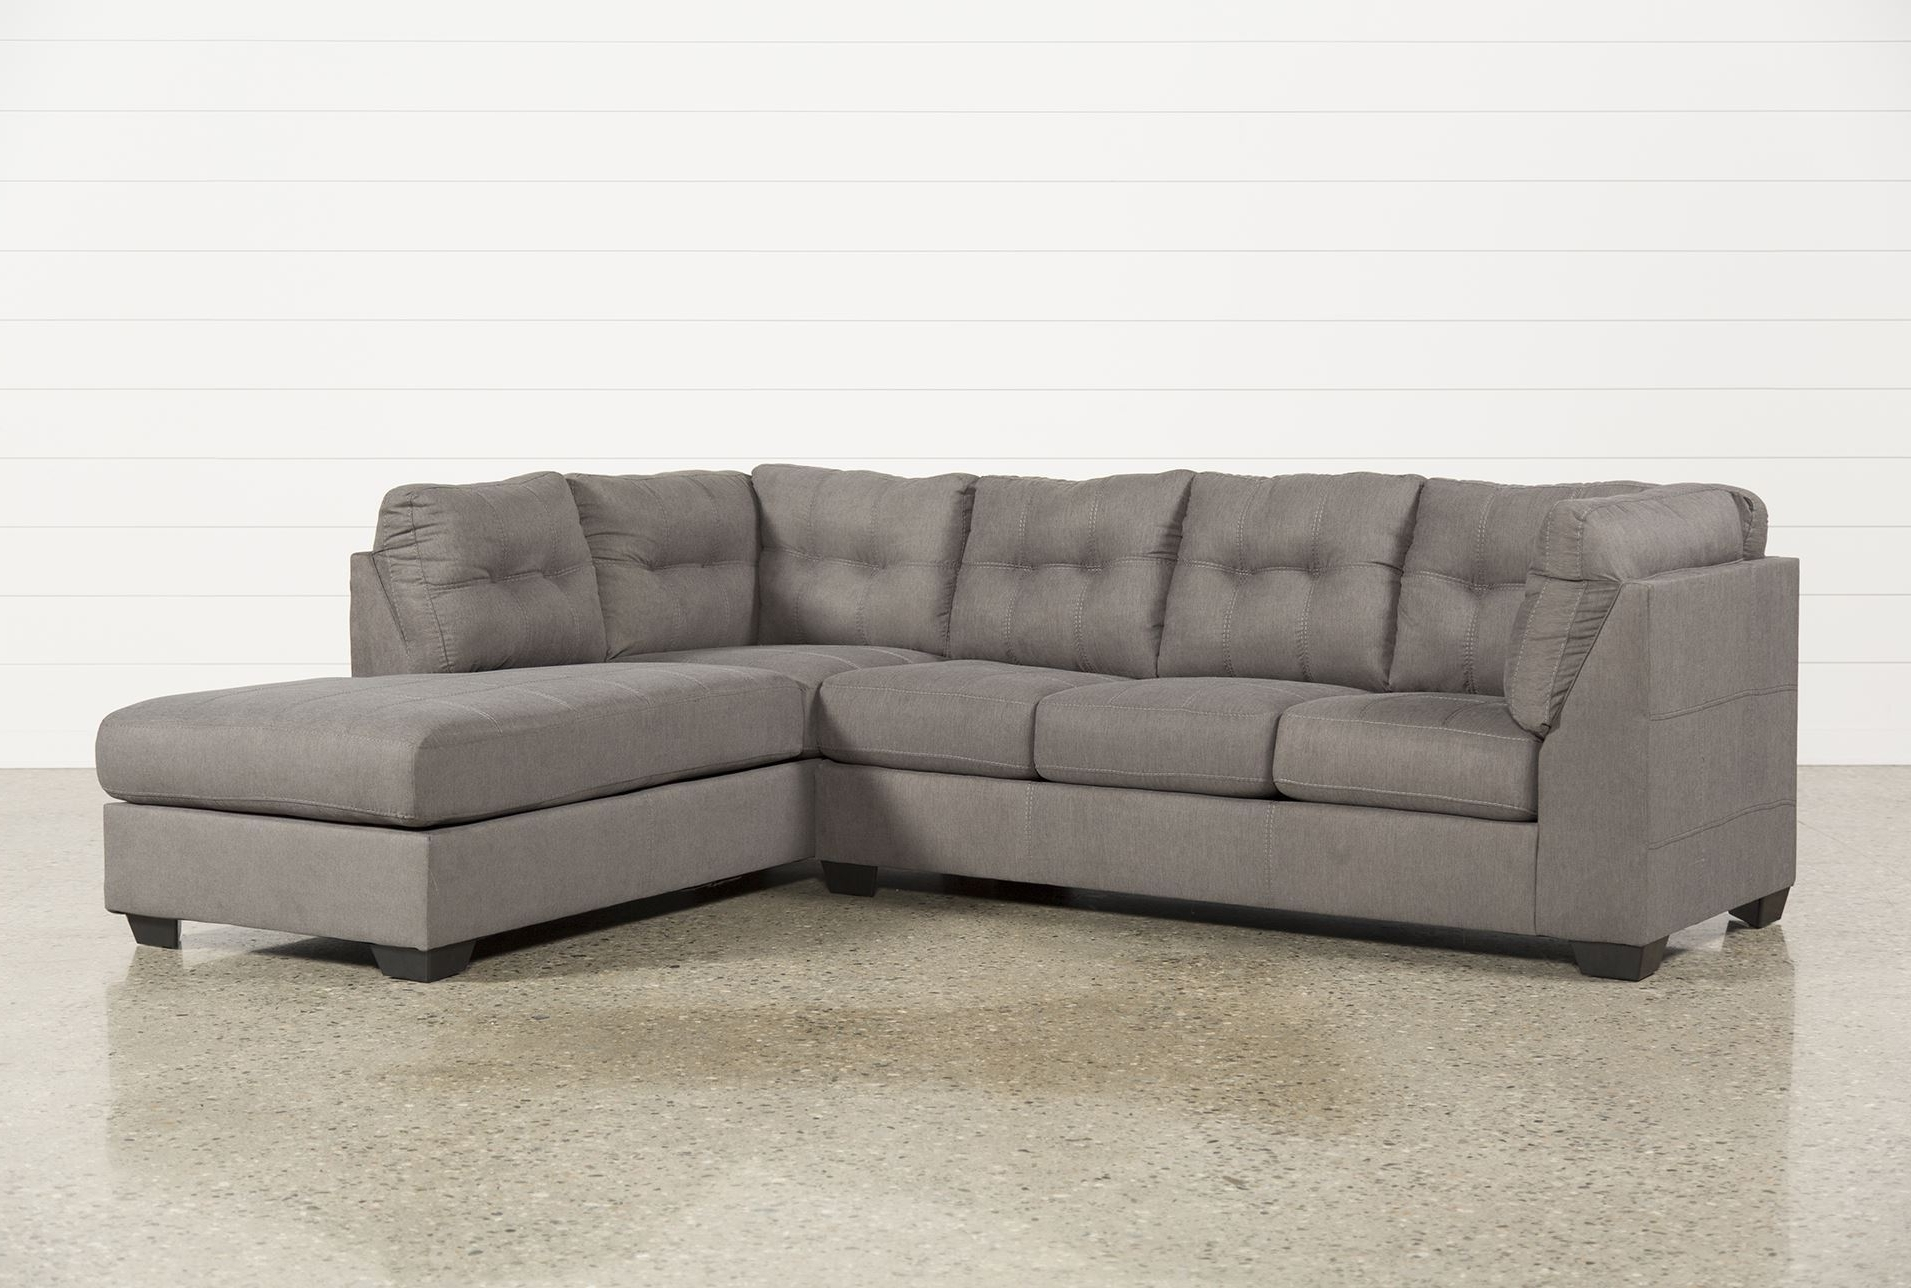 Most Recently Released Sectional Chaises Inside Popular Sectional Sofa With 2 Chaises 26 For Sectional Sofas (View 4 of 15)